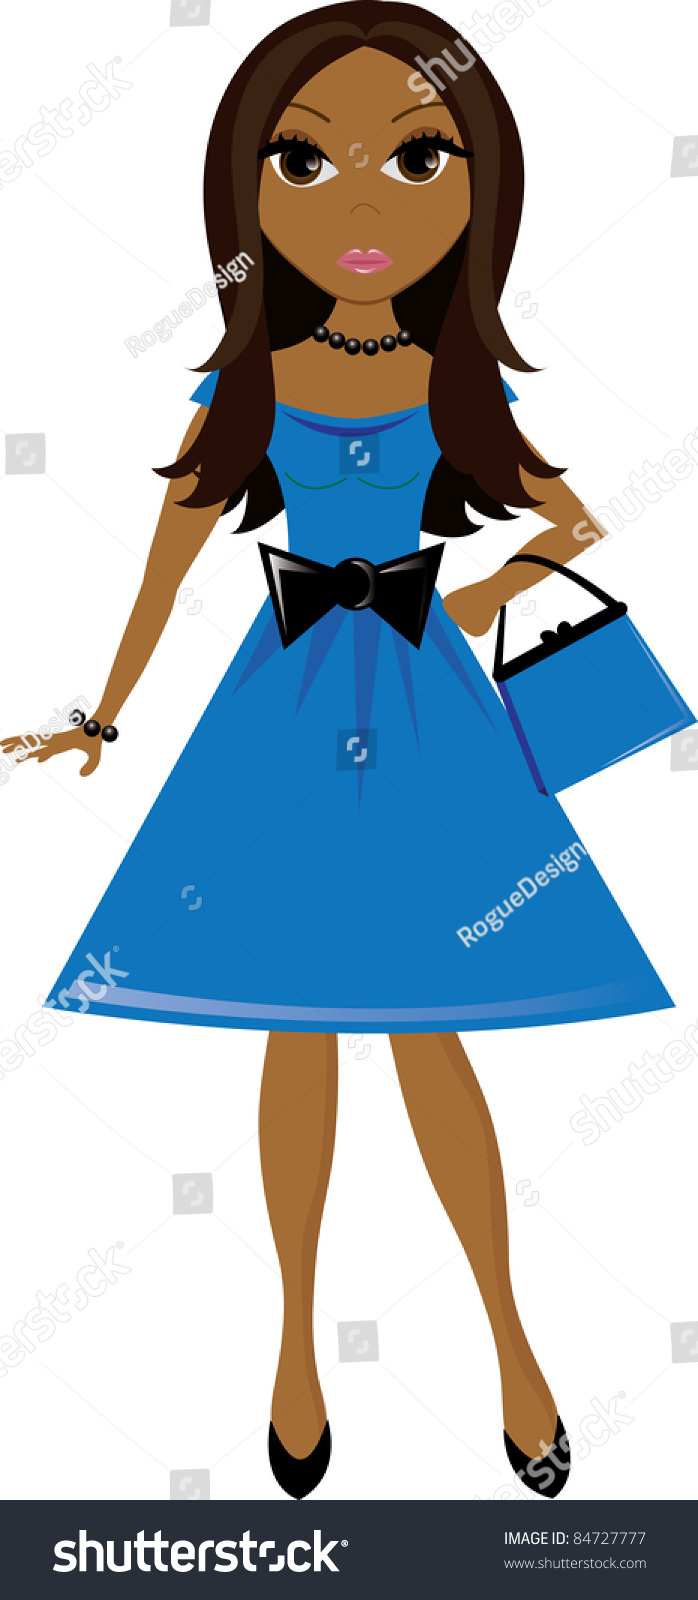 dress is a pivotal form of